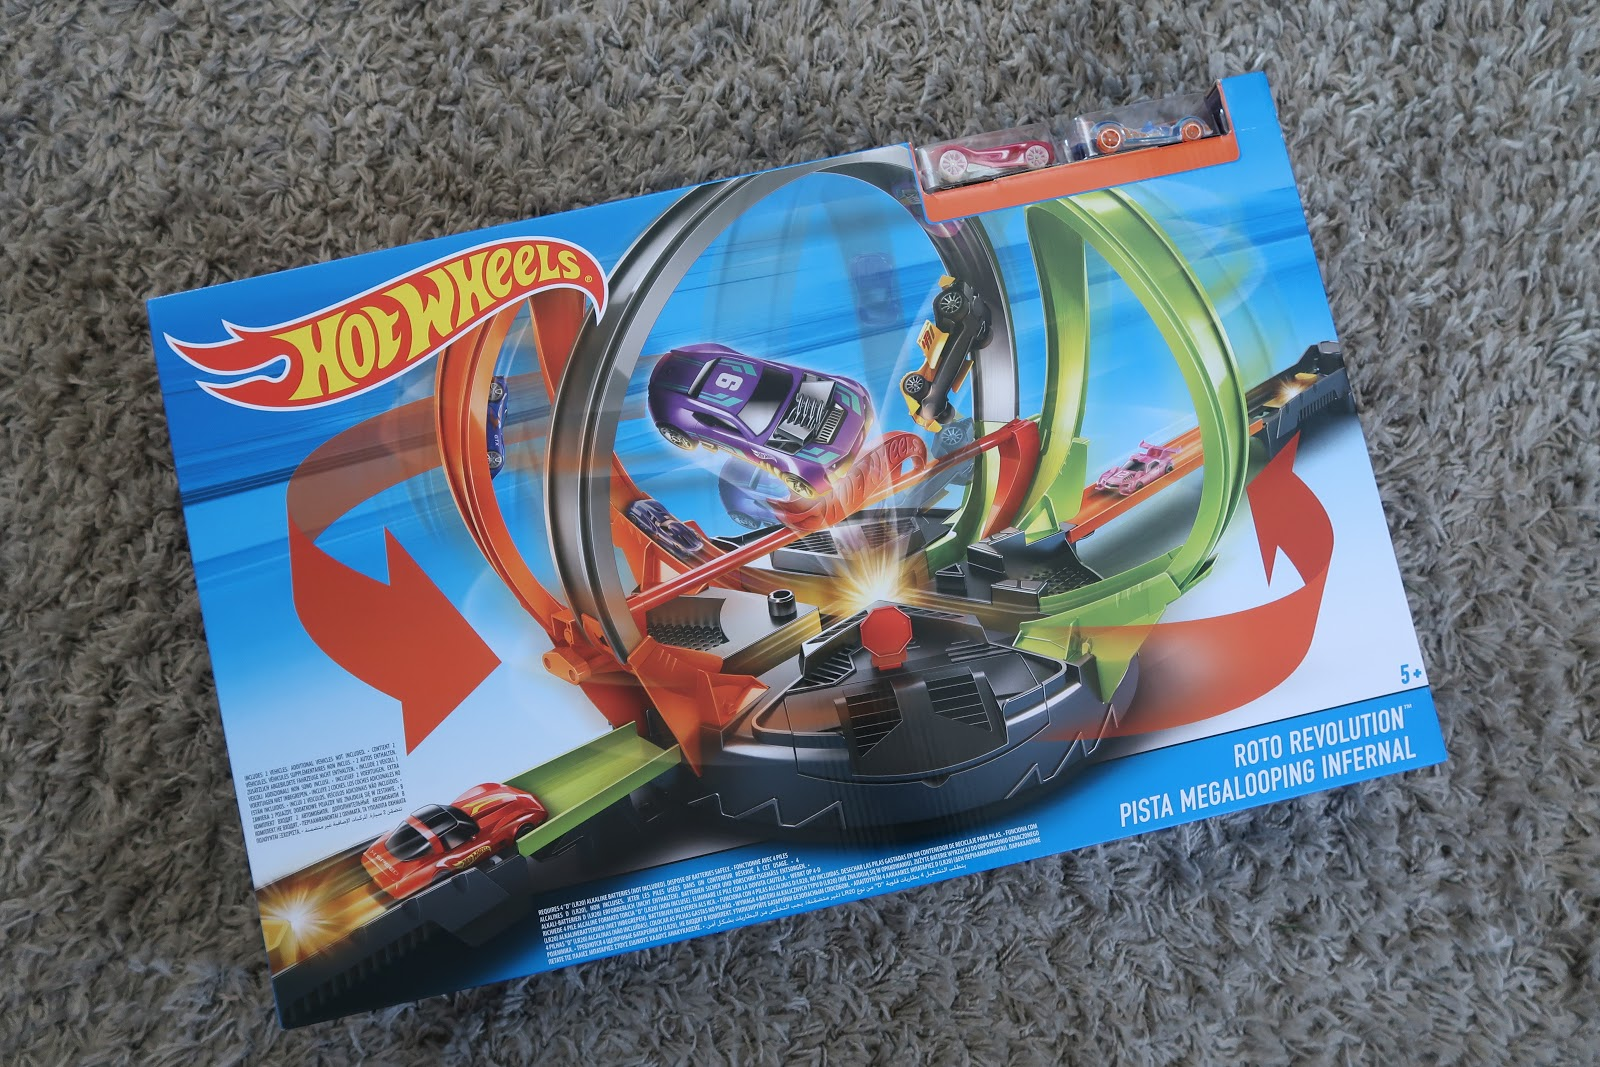 hot wheels roto revolution instructions